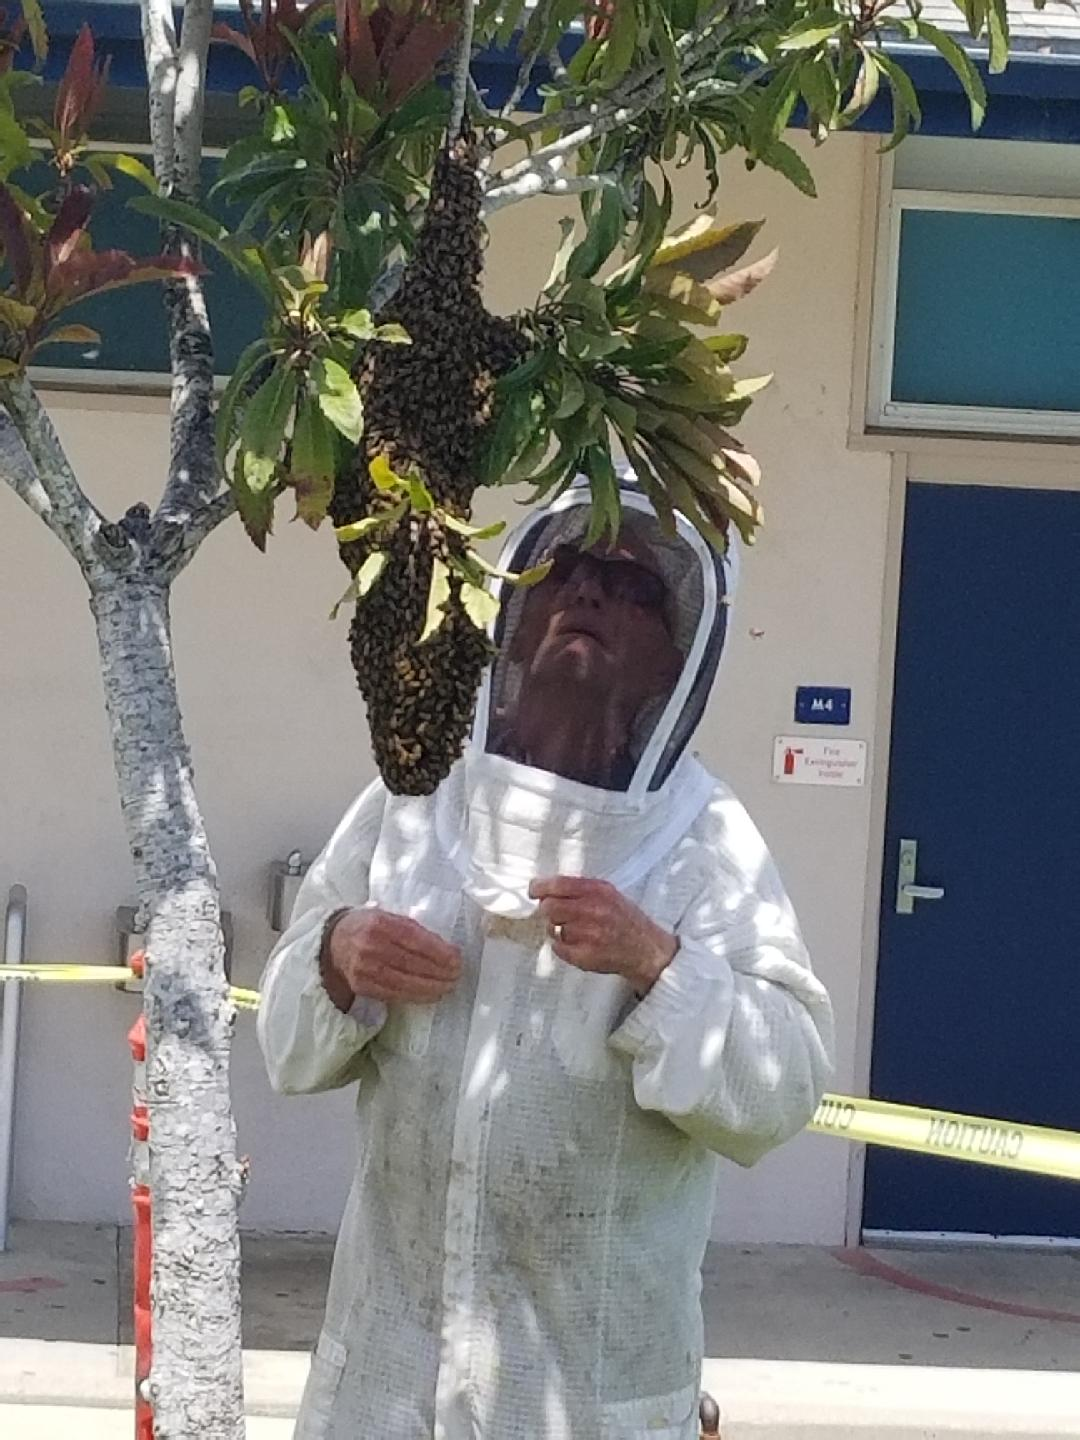 Bill Weinerth examines the bee hive prior to removing it from Cam High's campus.  Photo courtesy of Karen Chadwick